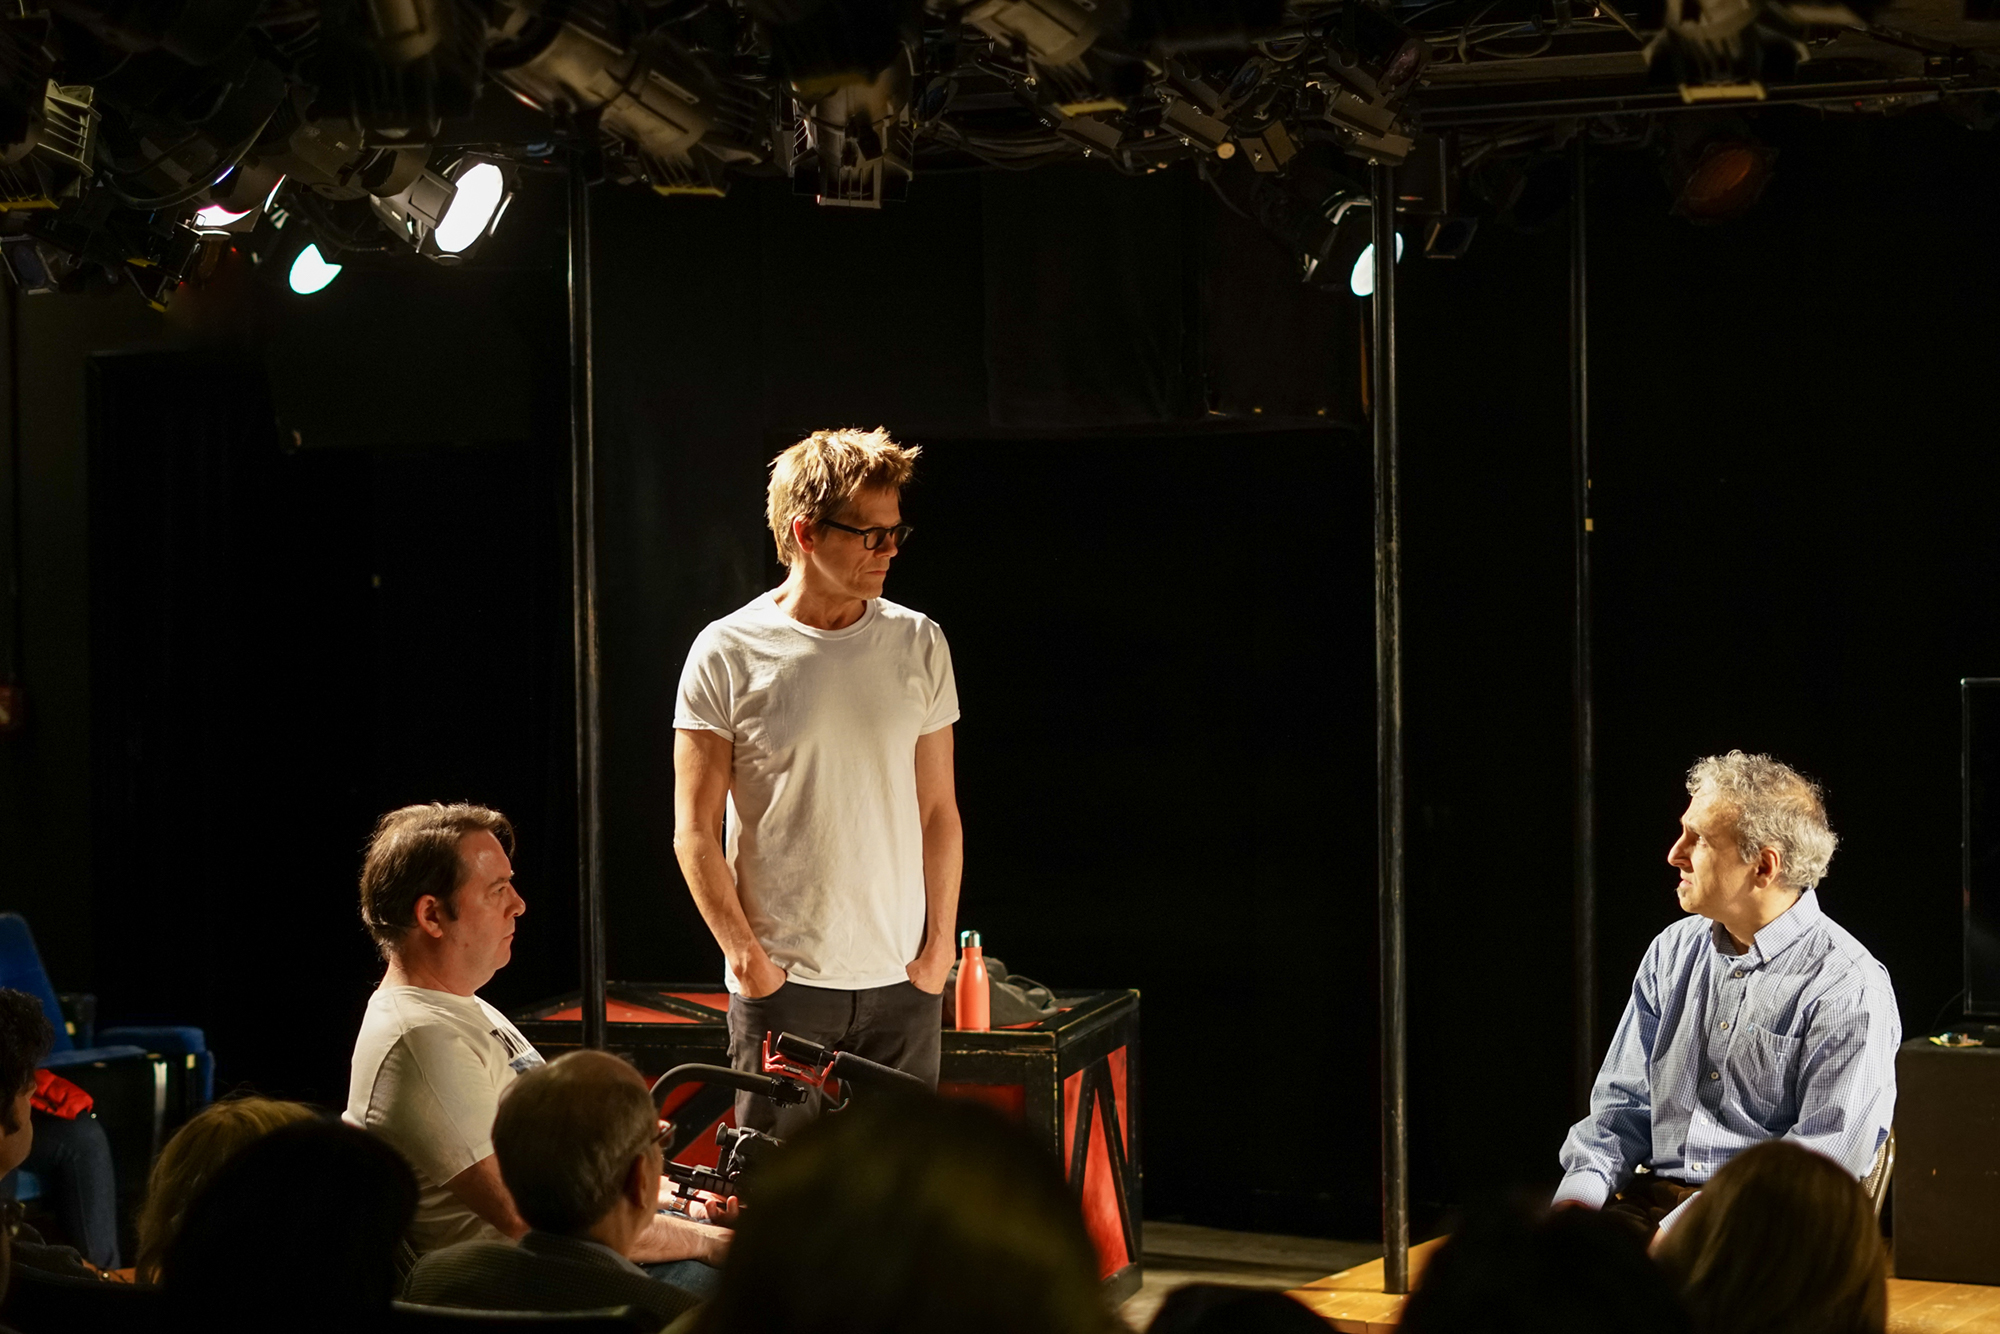 kevin_bacon_sedgwickrussell_master_1class-02135.jpg